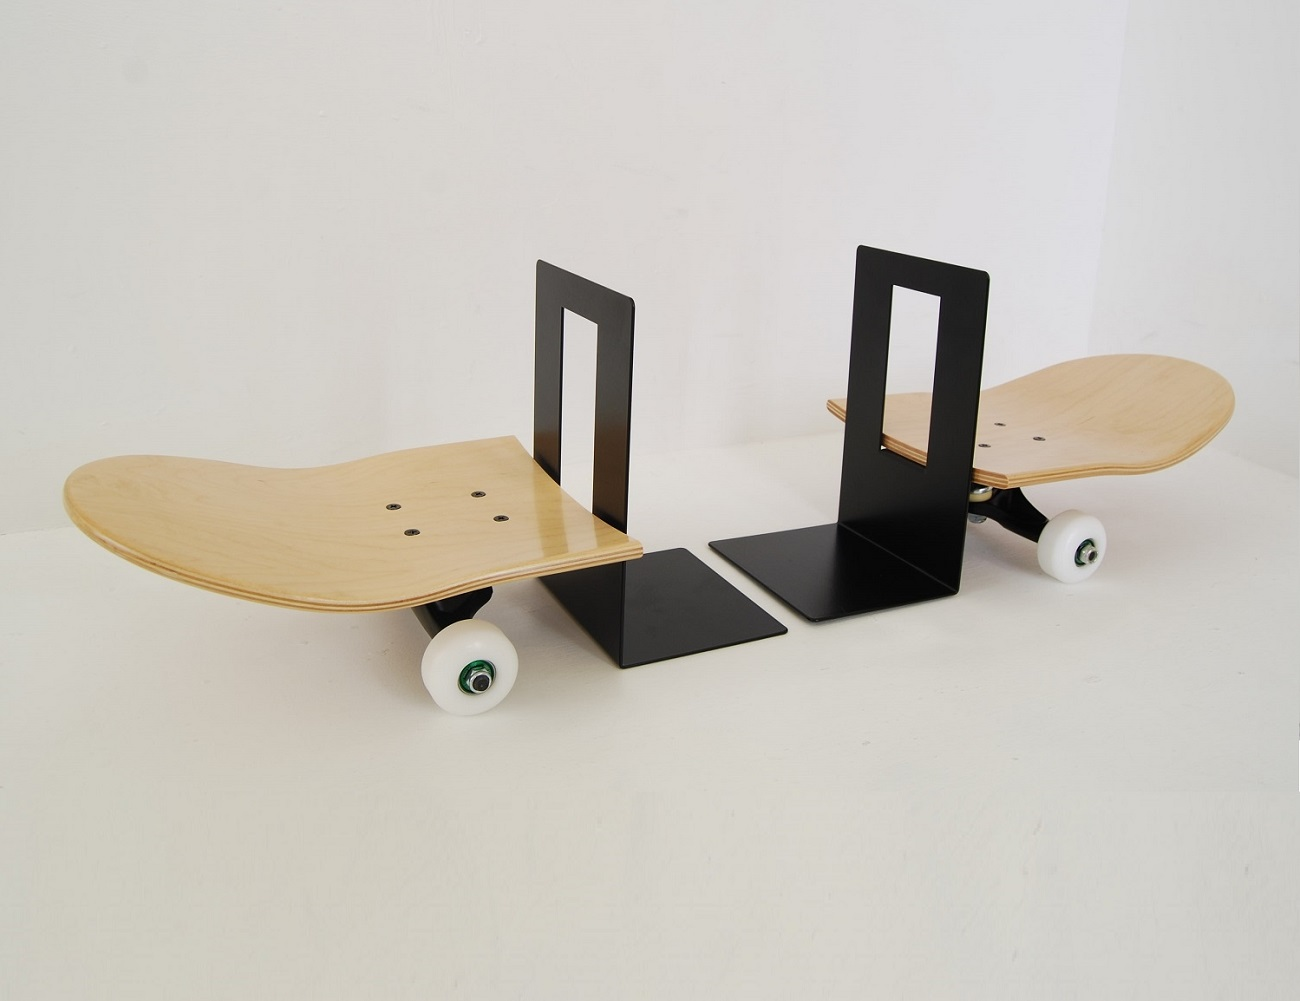 Tail and Nose Bookends by Skate-Home